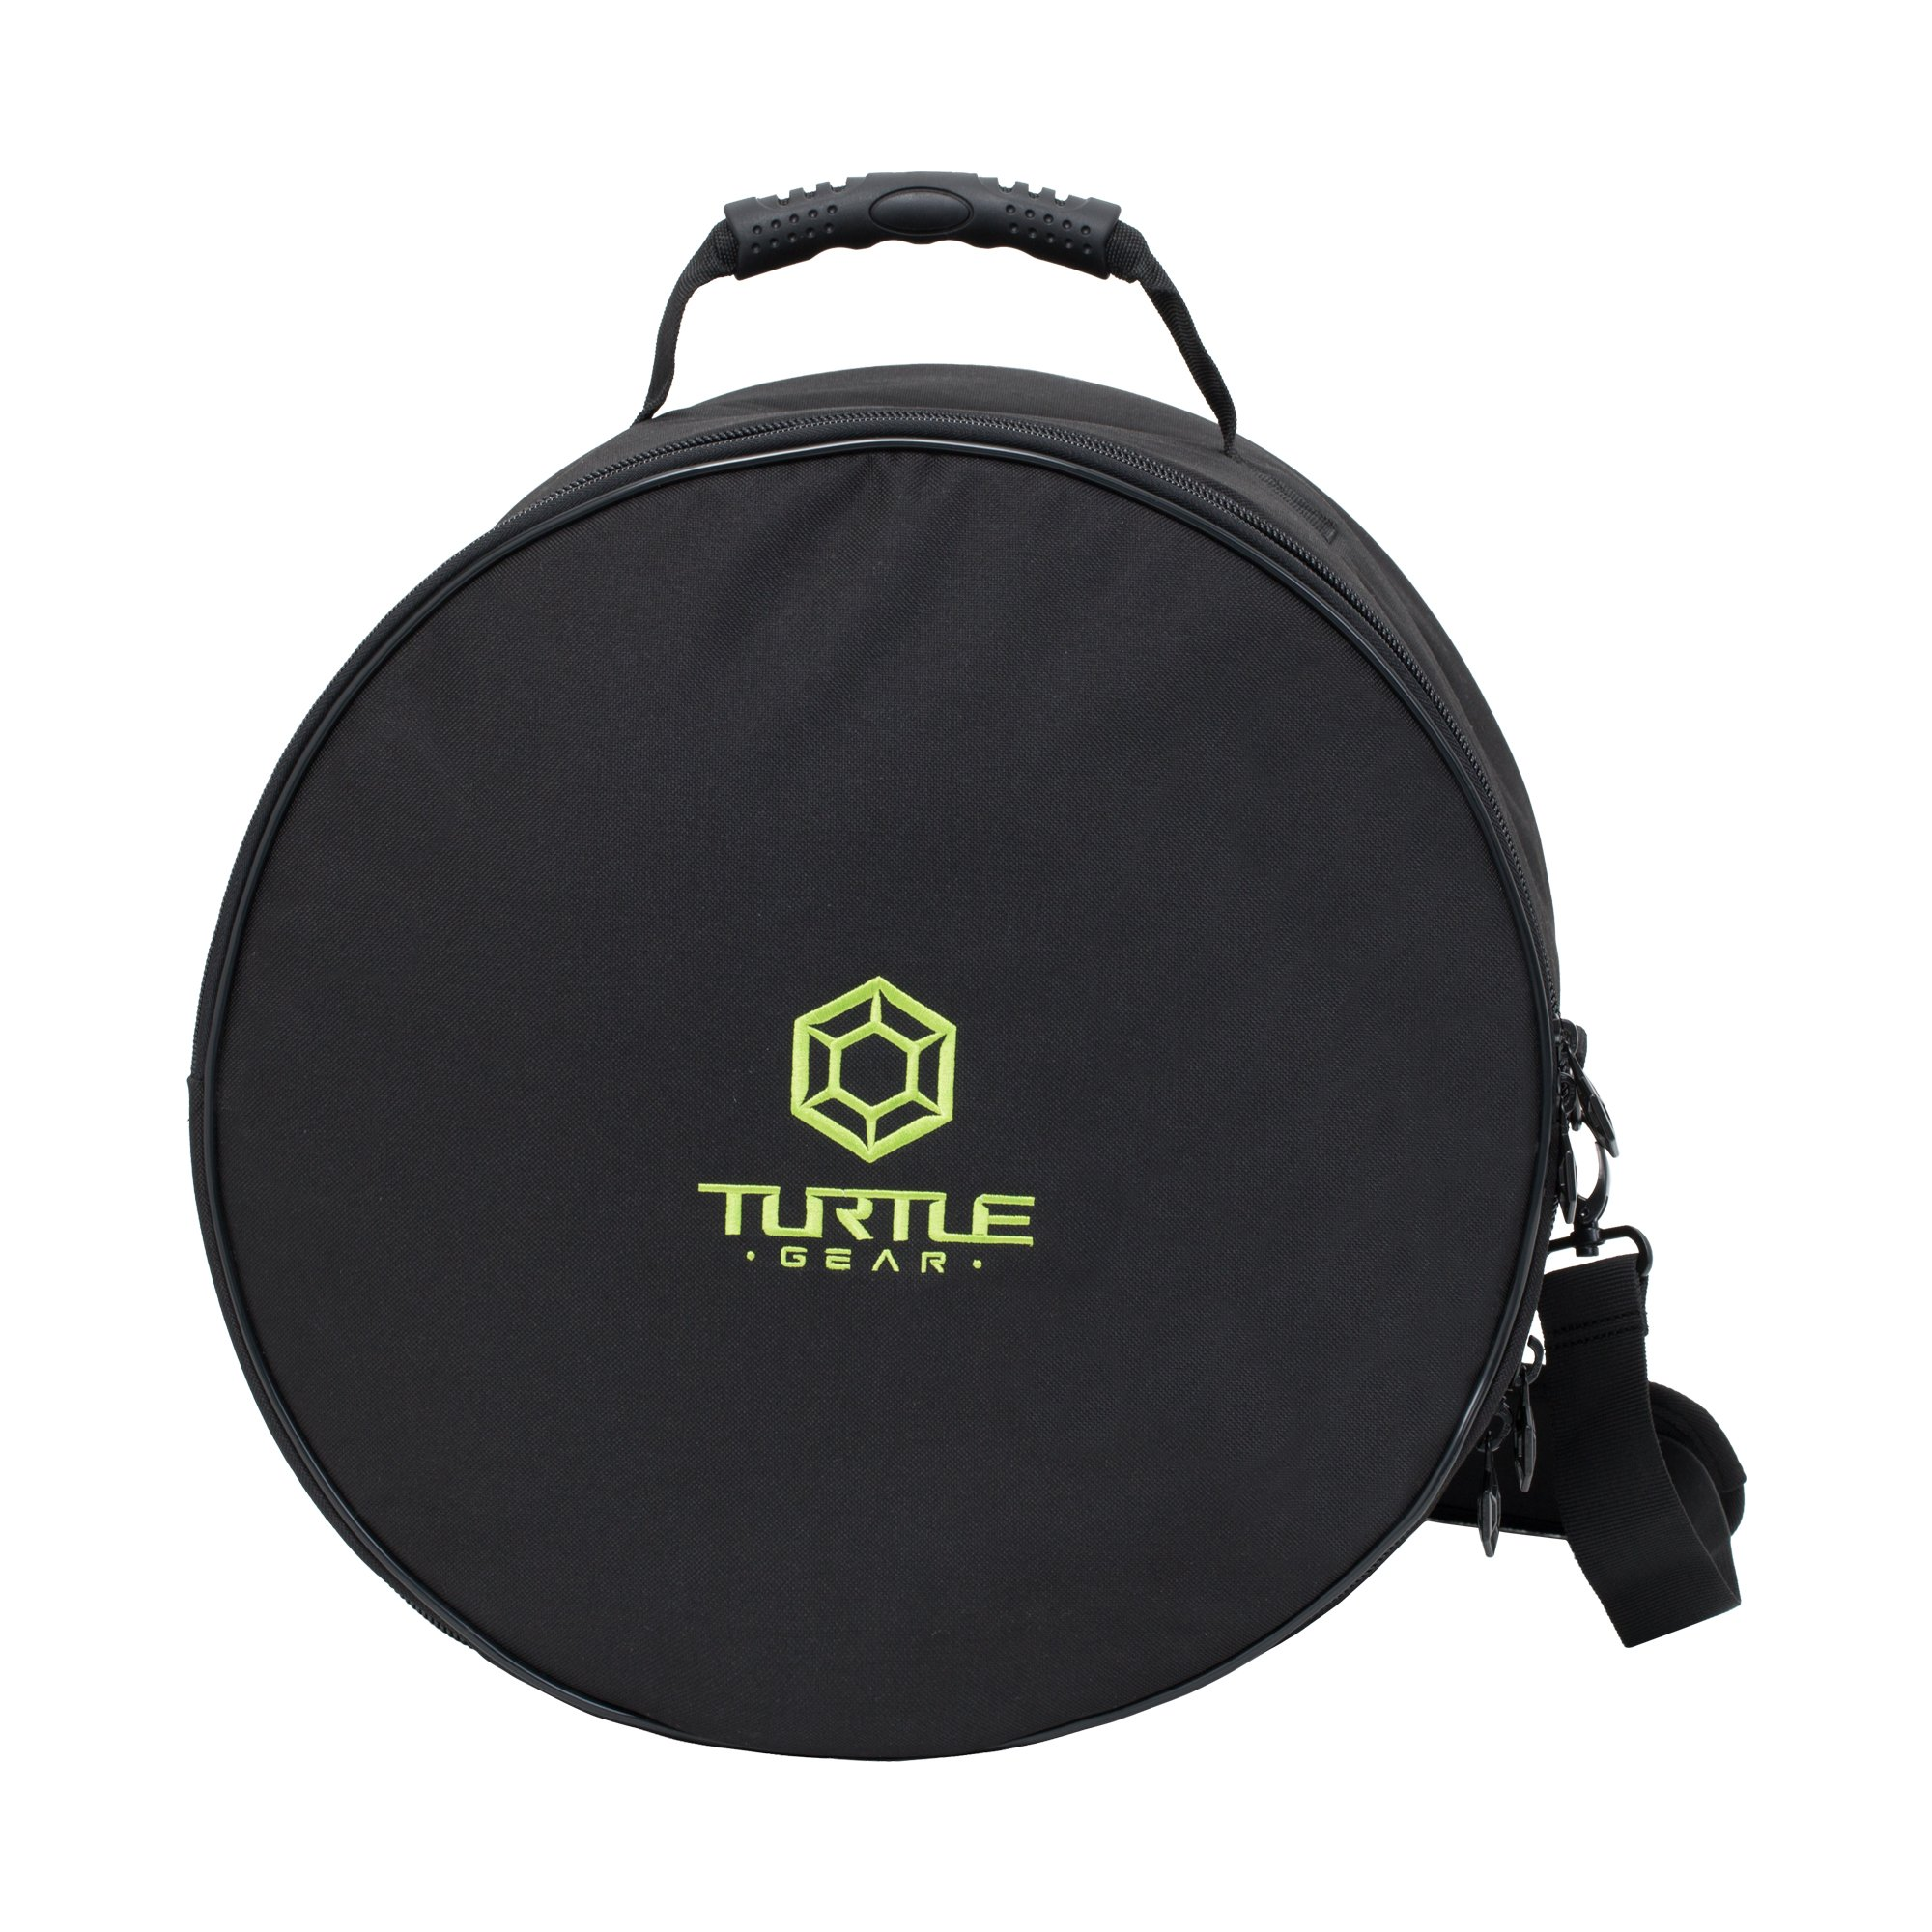 TURTLE GEAR Extra Thick Padded Nylon Drum Case Bags: Standard 5-piece Set by Turtle Gear (Image #3)